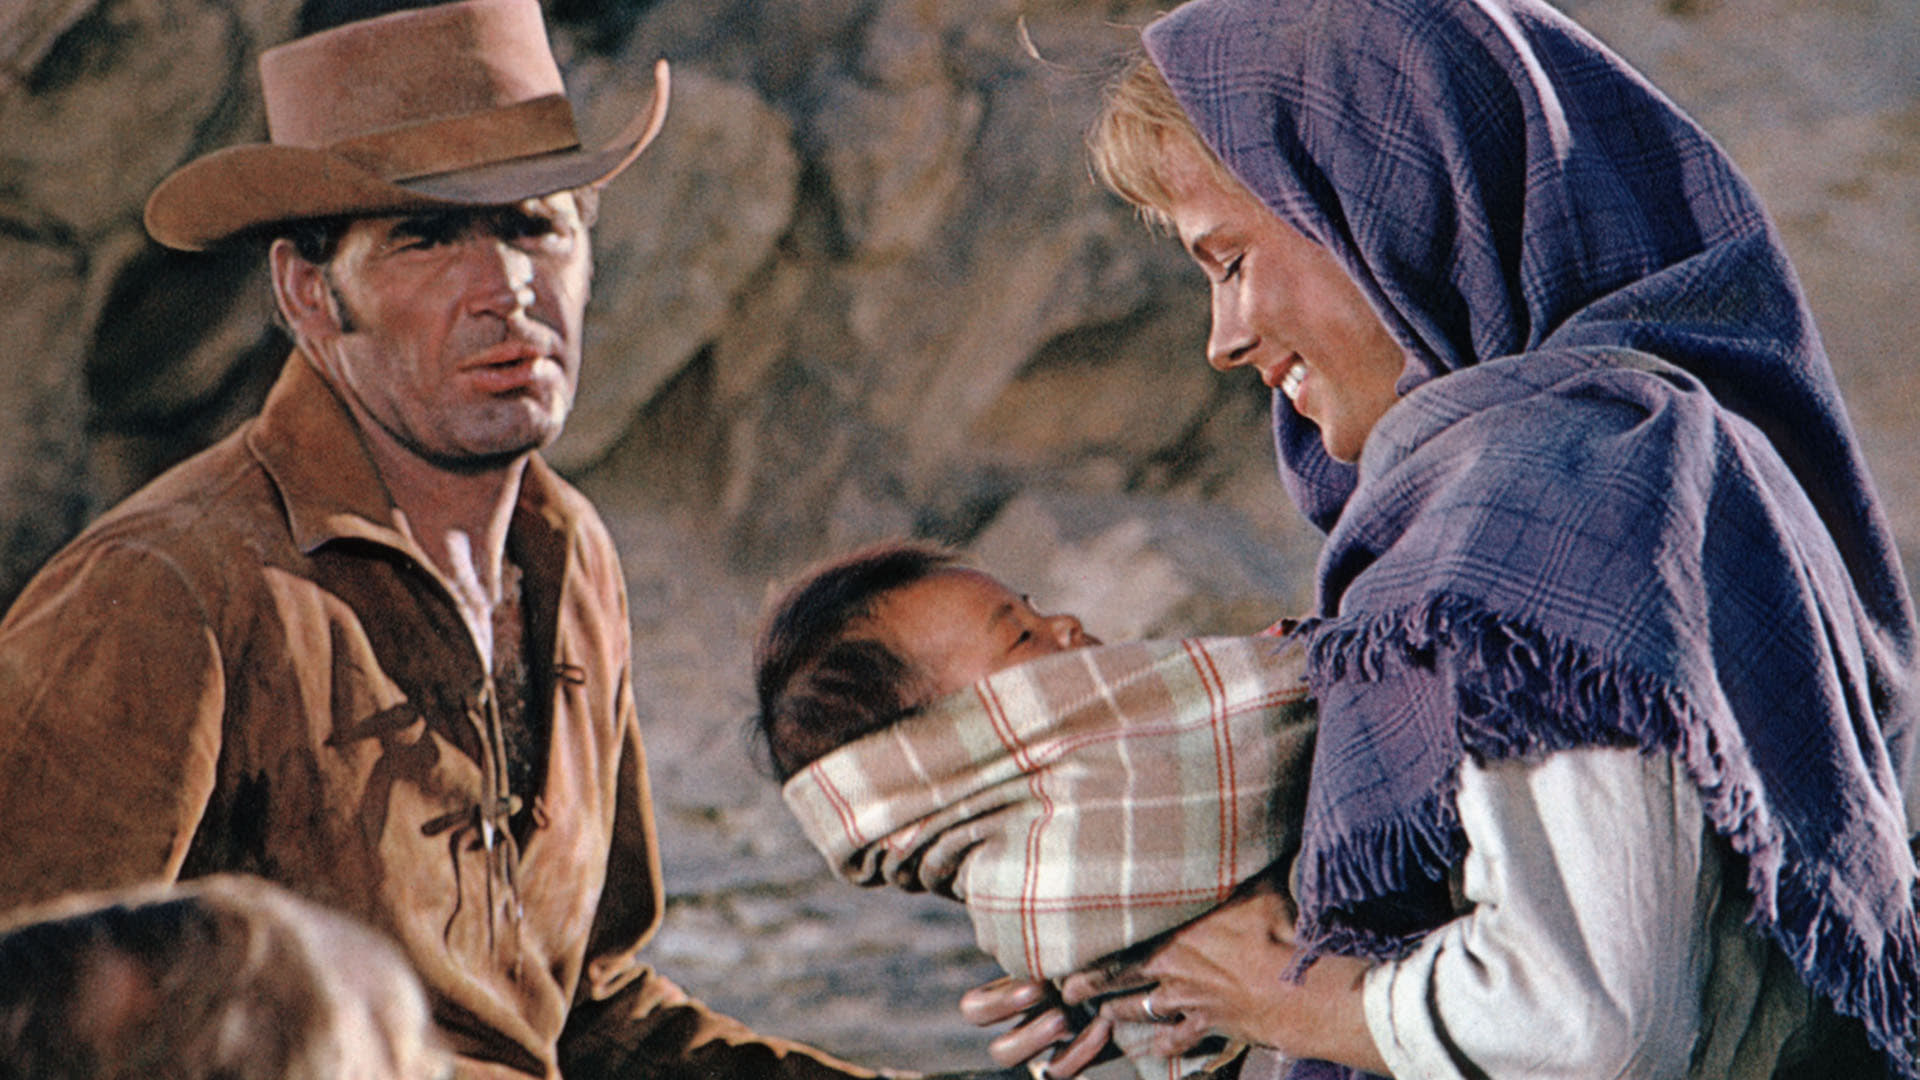 Watch Duel at Diablo (1966) Full Movie Online Free | Stream Free Movies & TV Shows